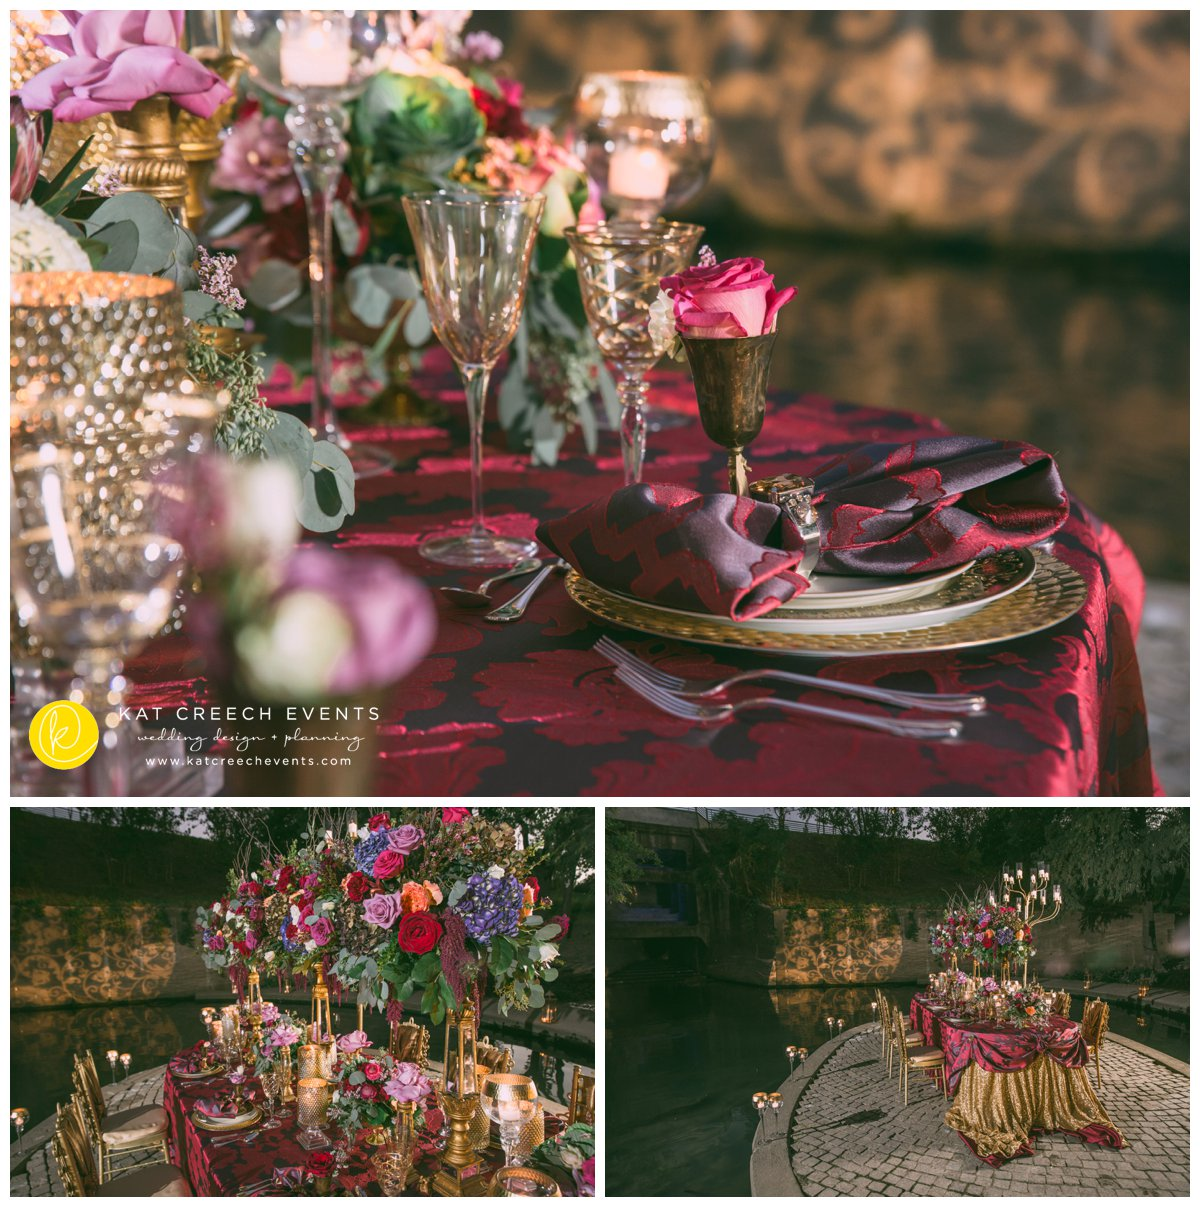 gold stemware |place setting |gobo lights |romance on the bayou | floral centerpieces |kat creech events | wedding stylist